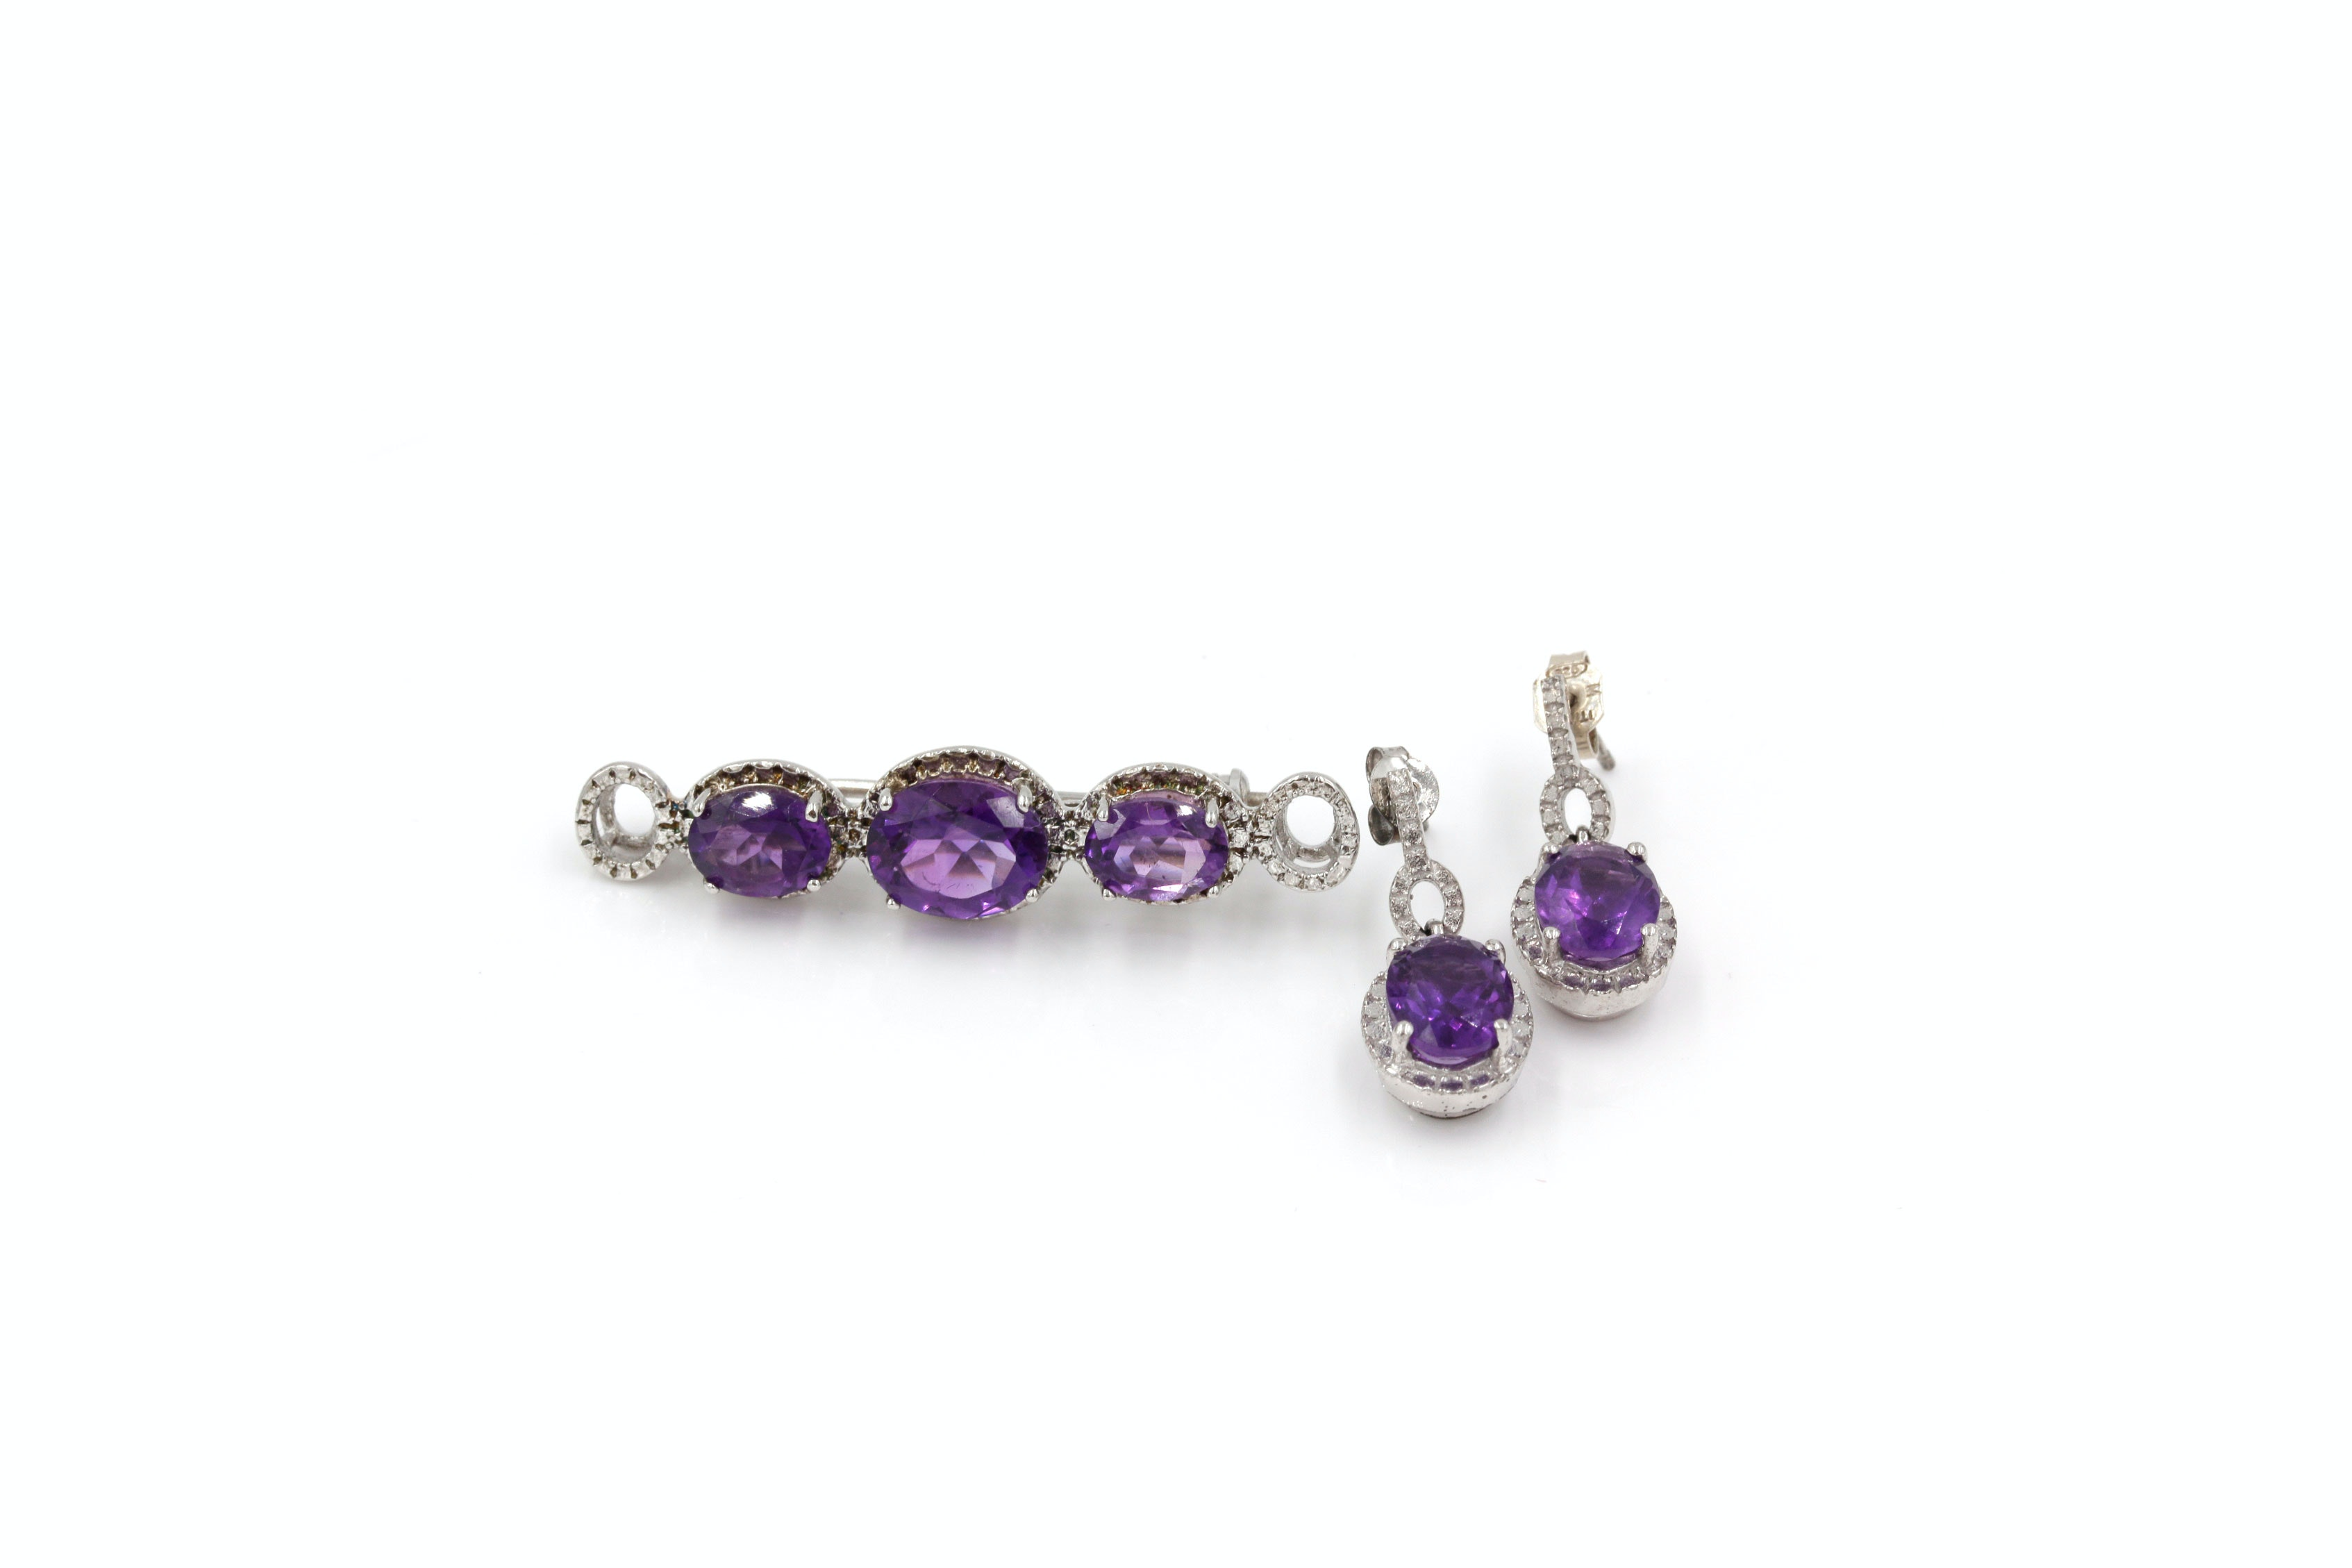 Sterling Silver and Amethyst Earrings and Brooch